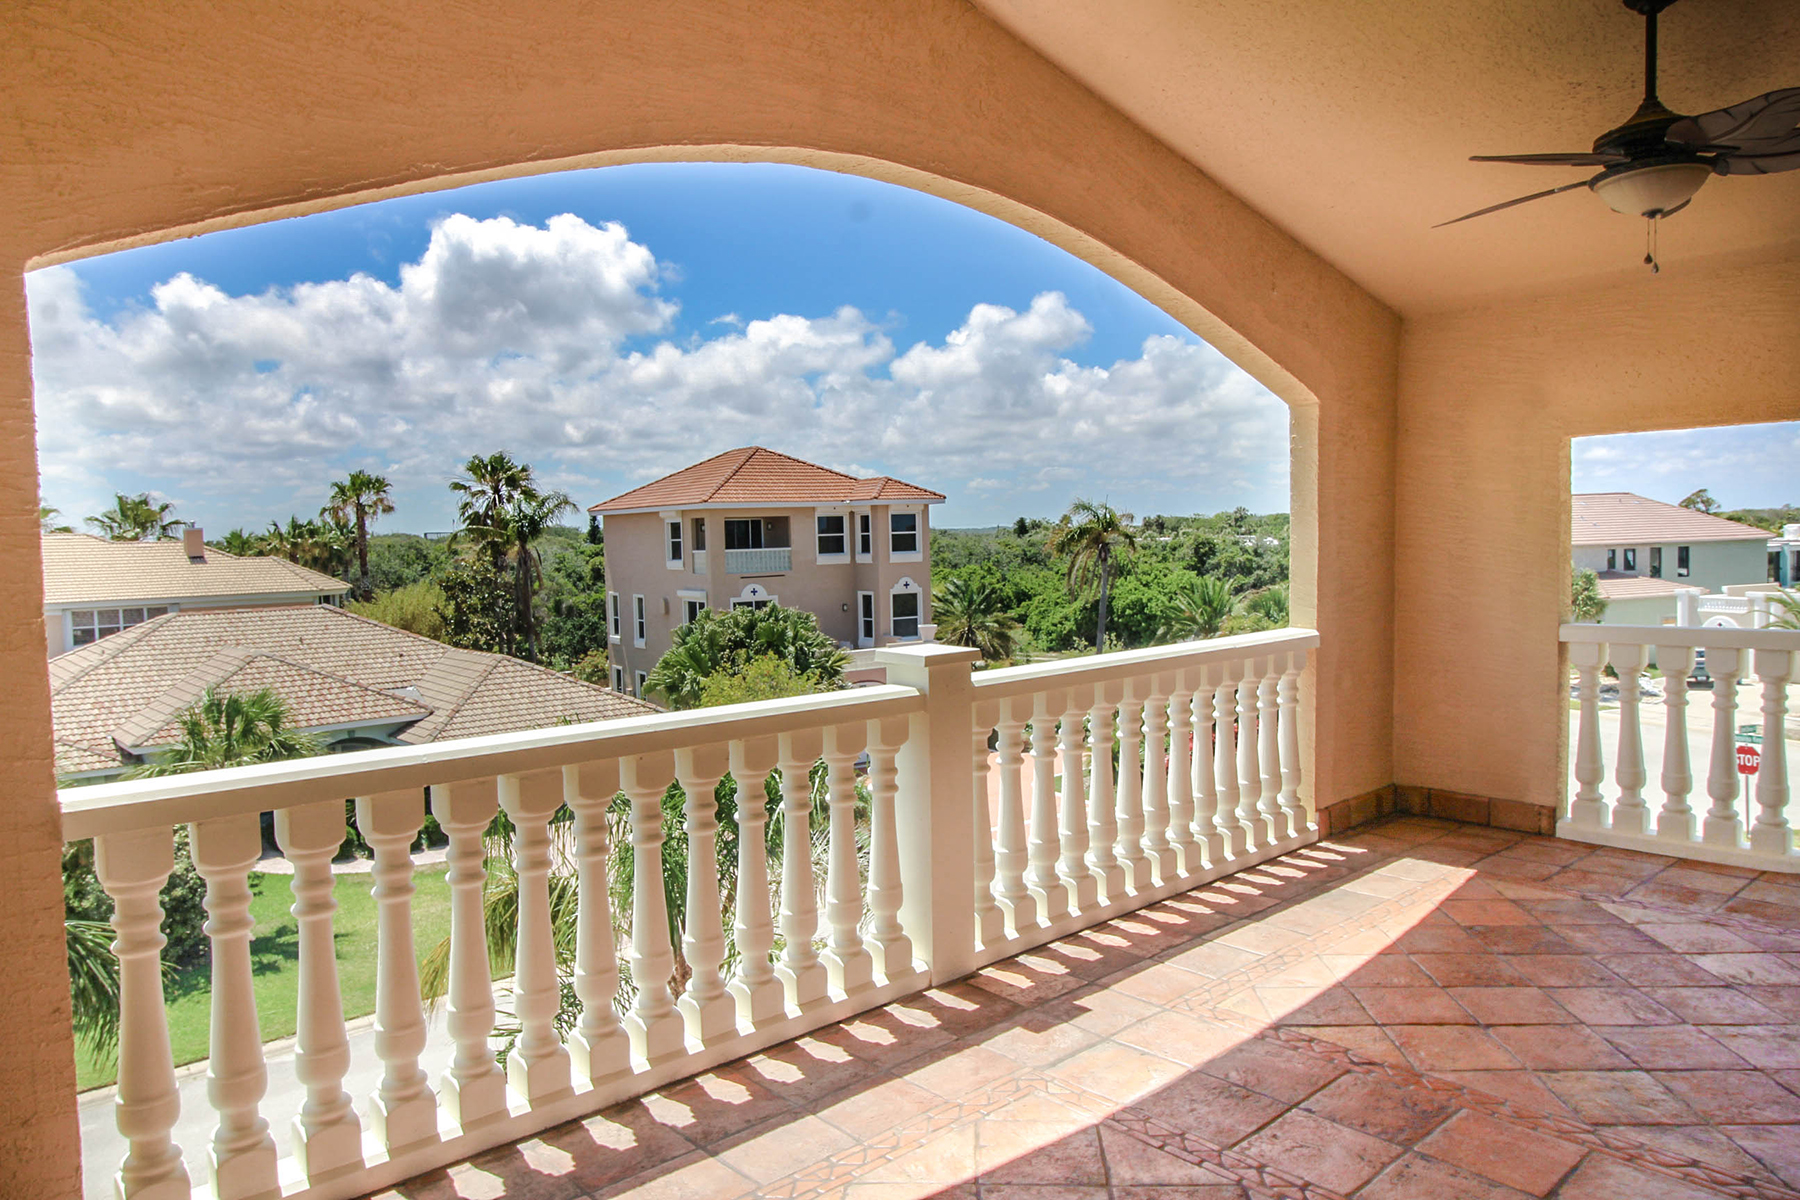 Additional photo for property listing at NORTH ORLANDO - ORMOND BEACH 3729  Egret Dunes Dr Ormond Beach, Florida 32176 États-Unis